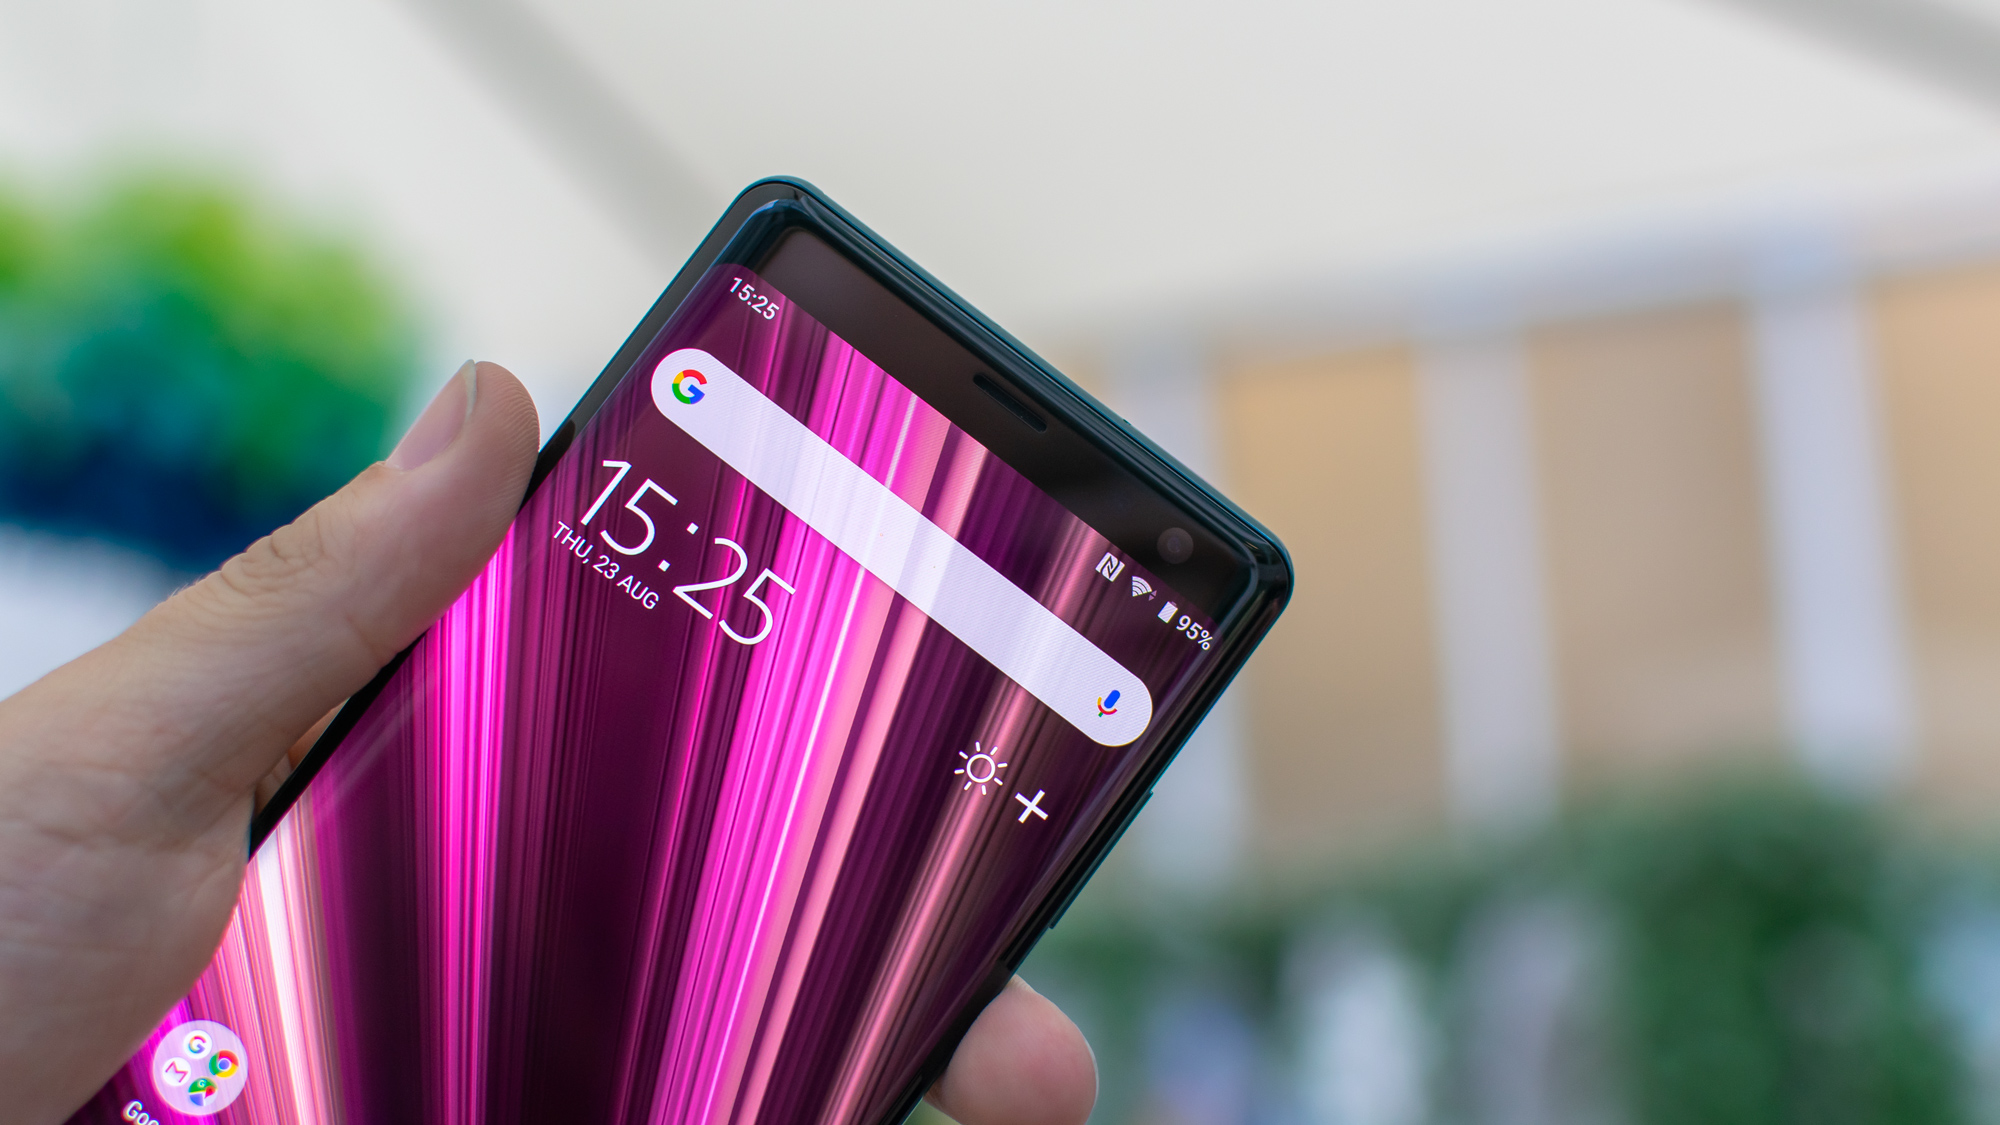 Sony launches Xperia XZ3 at IFA with a 6.0-inch OLED display